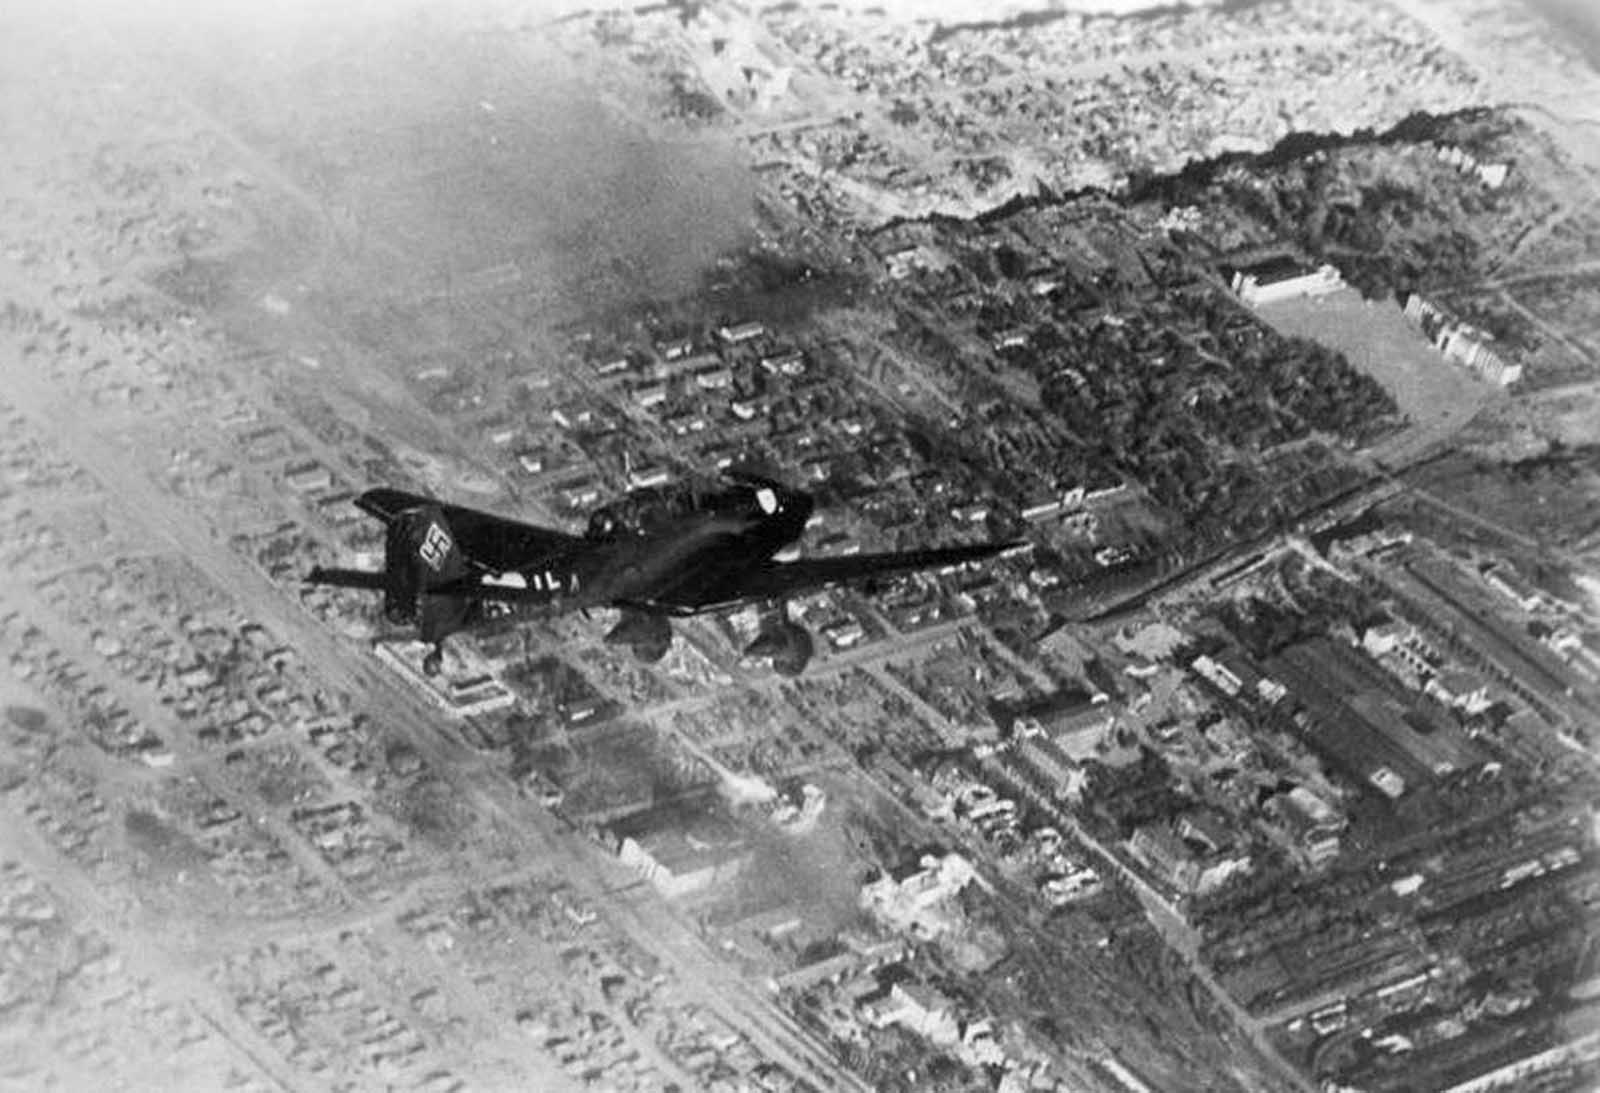 In October of 1942, a German Junkers Ju 87